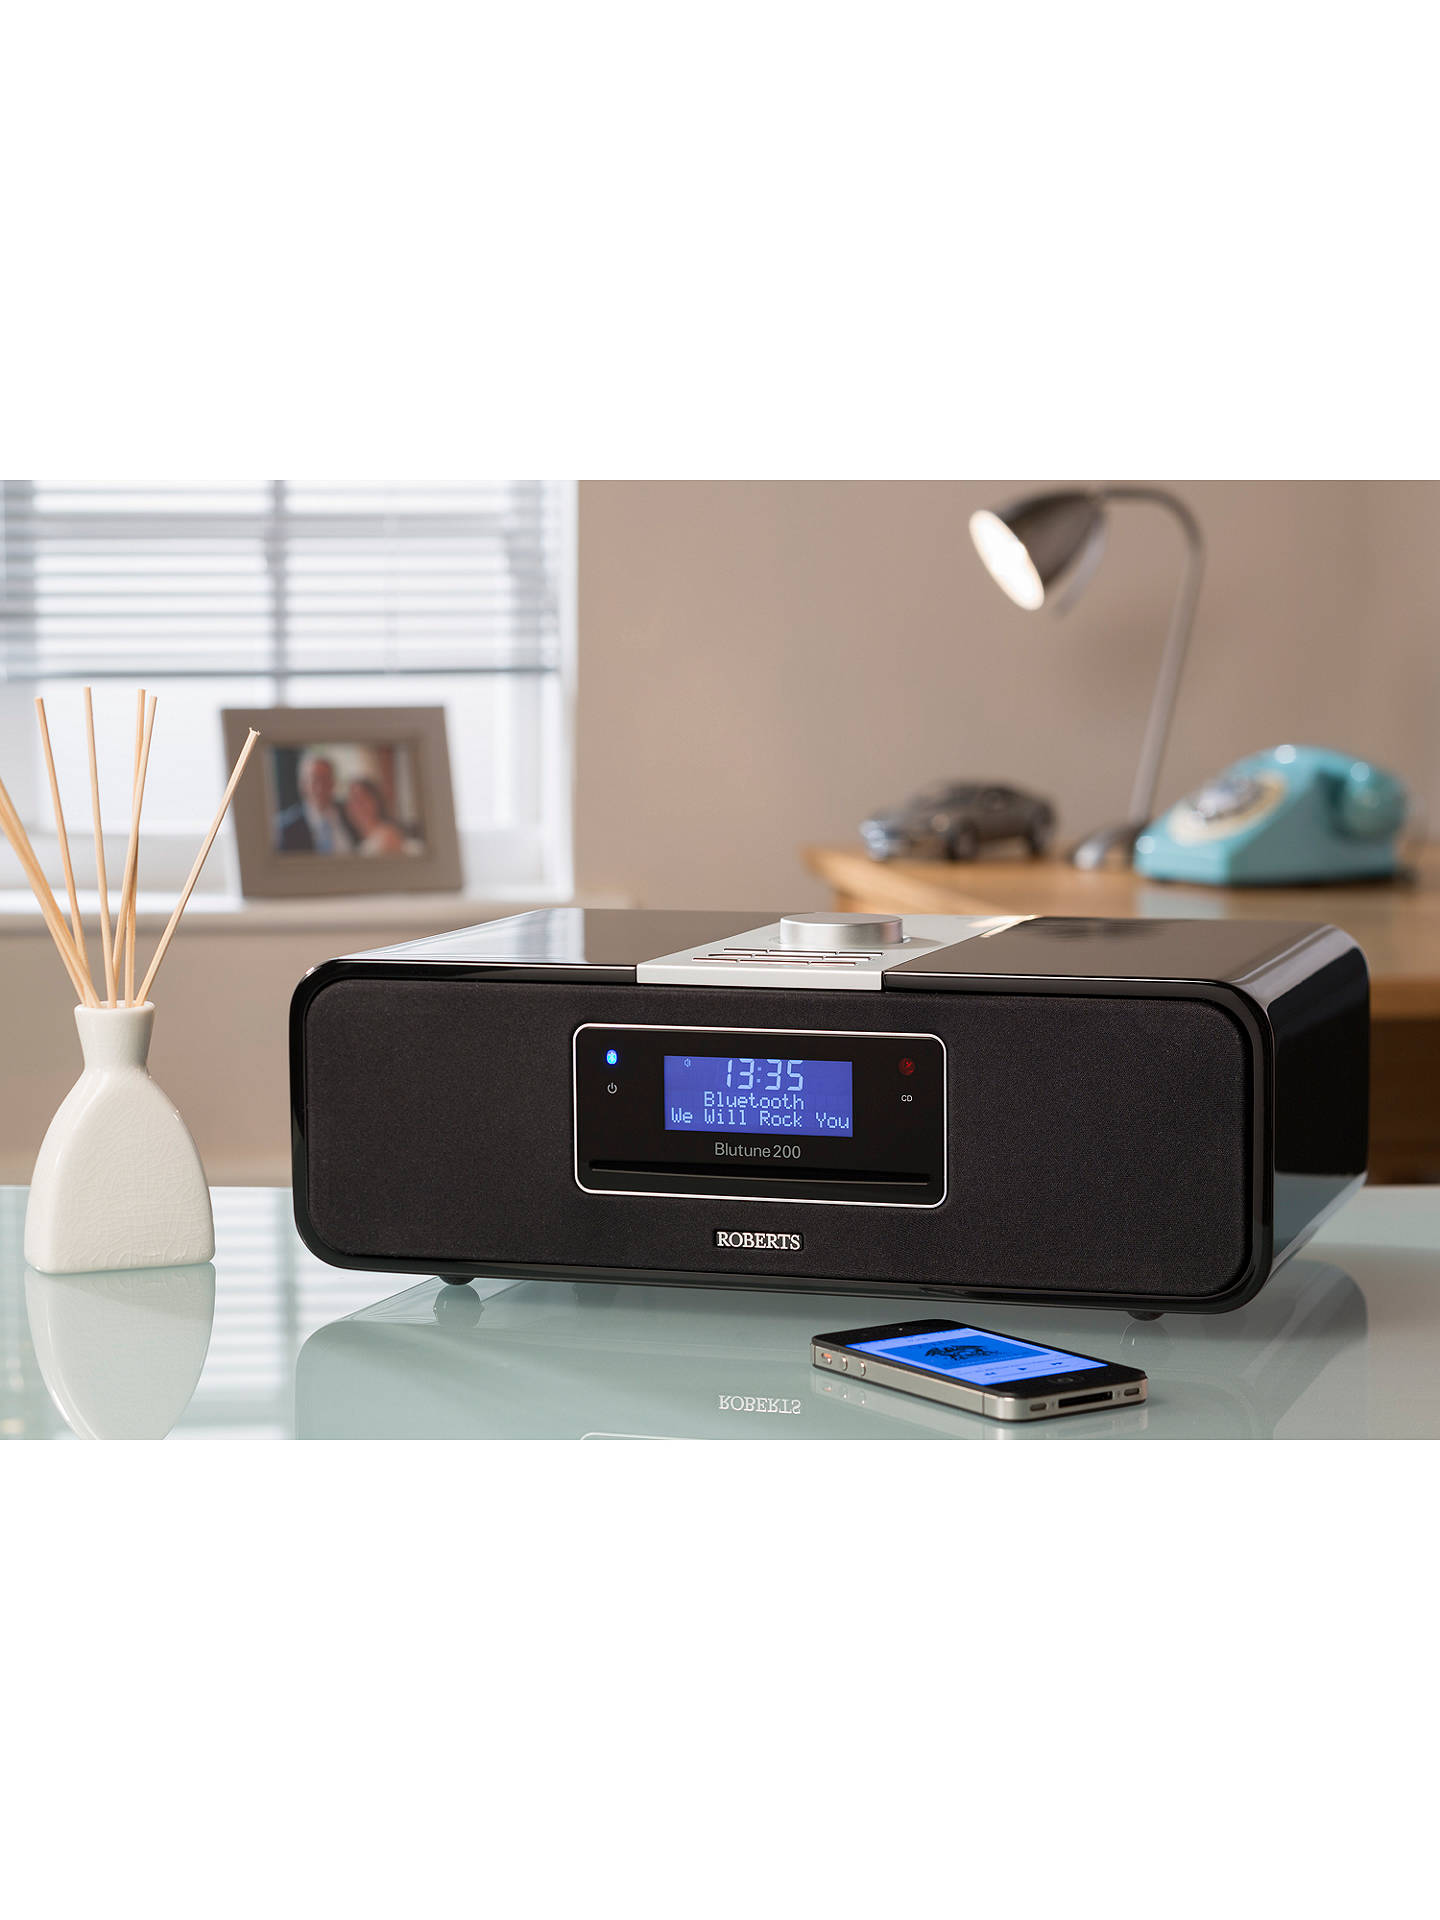 Buy ROBERTS Blutune 200 DAB/FM/CD Bluetooth Radio, Gloss Black Online at johnlewis.com